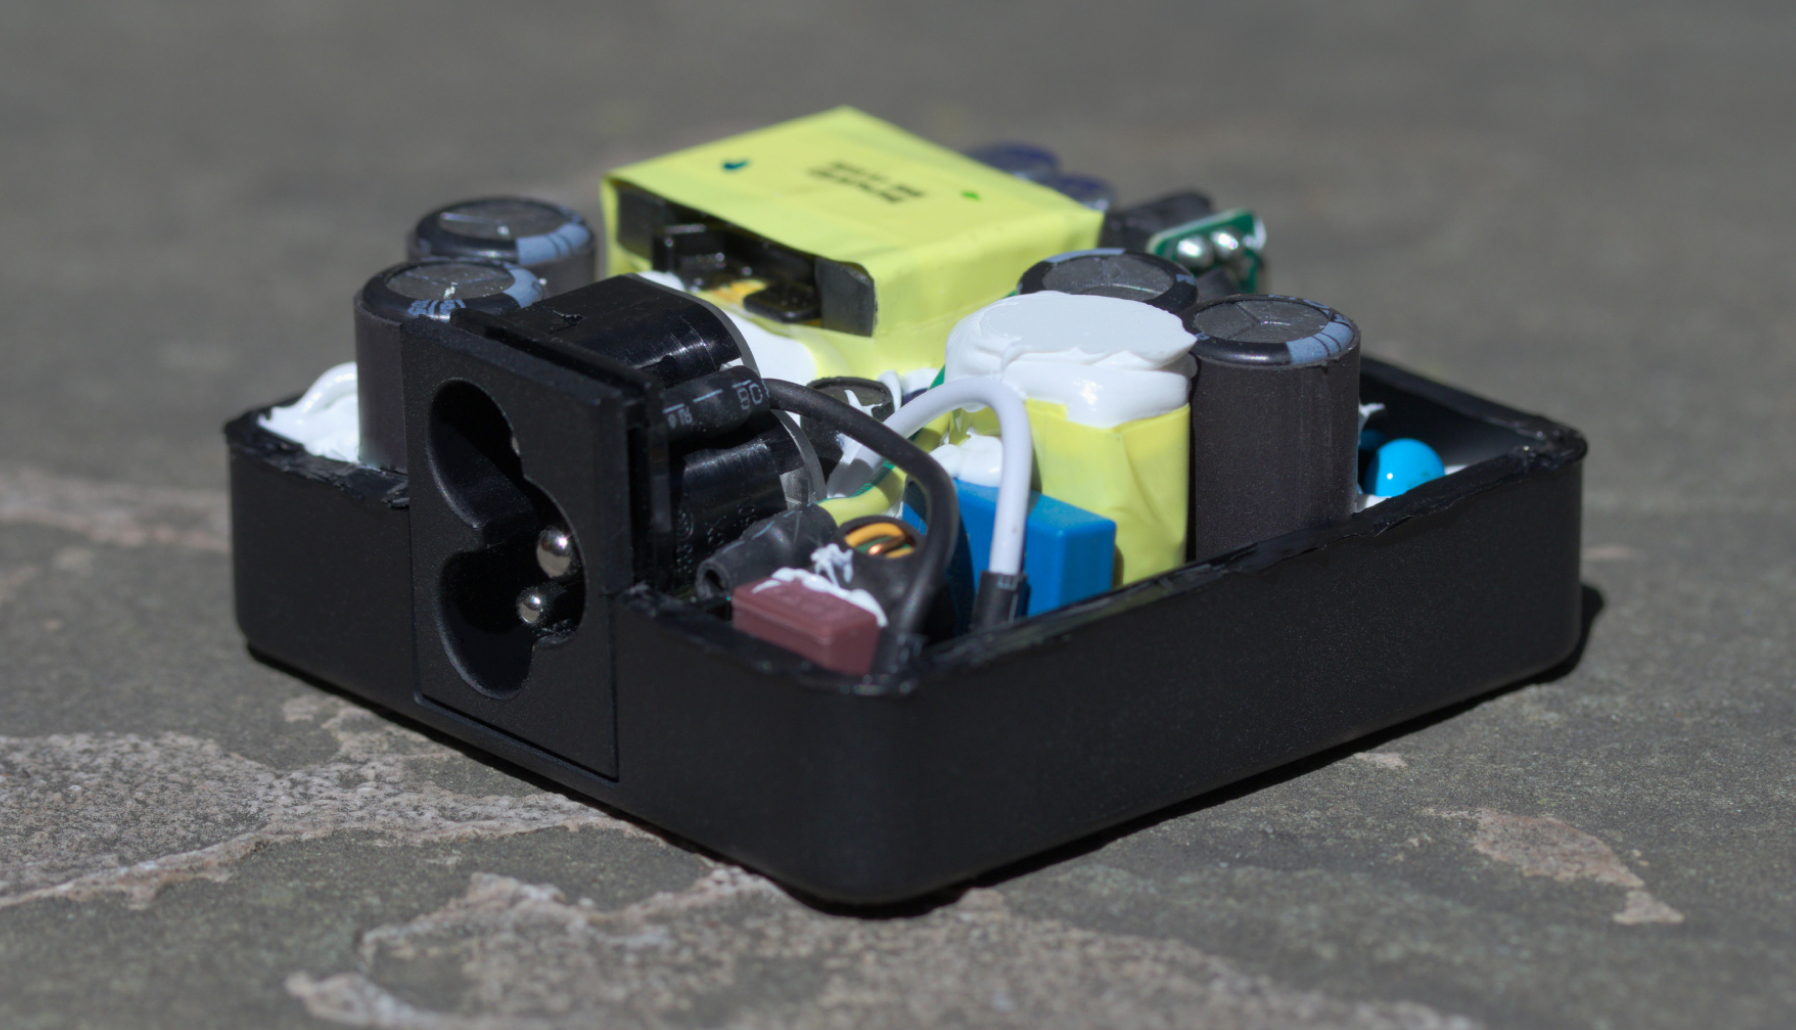 Power adapter with exposed internals